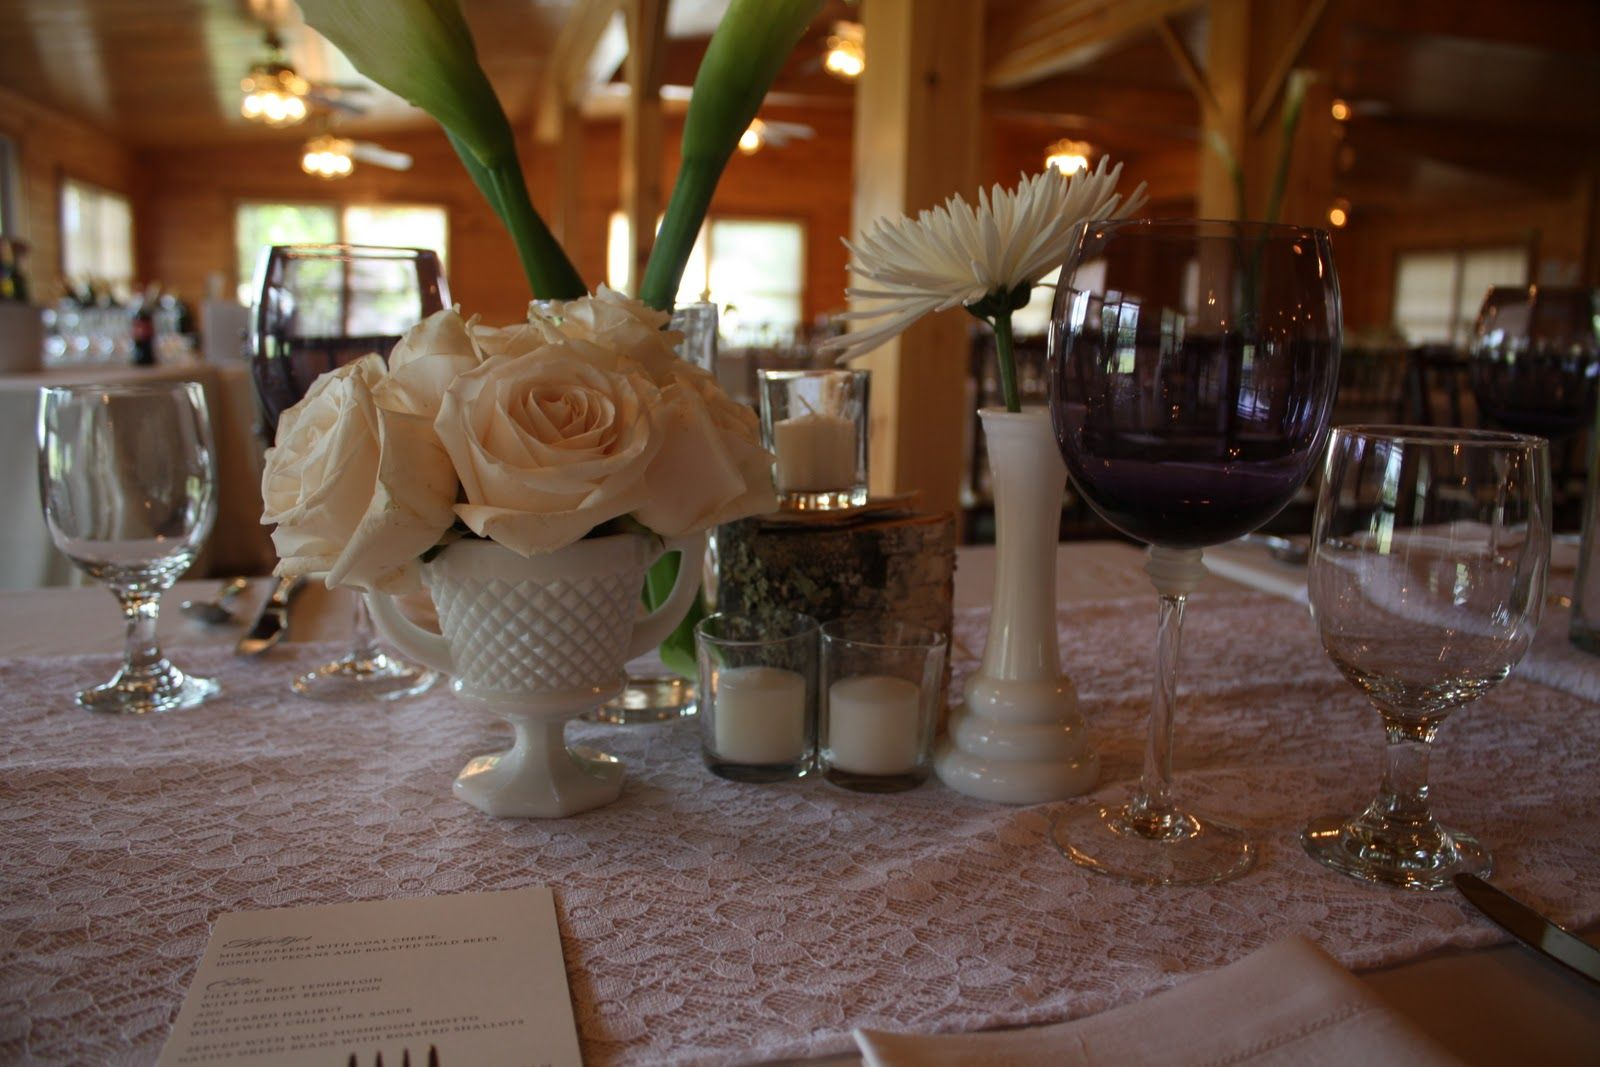 Table Setup Idea, mason jars as glasses and formal vase as the center piece and the picture frame with the guests names (seating) at each table.